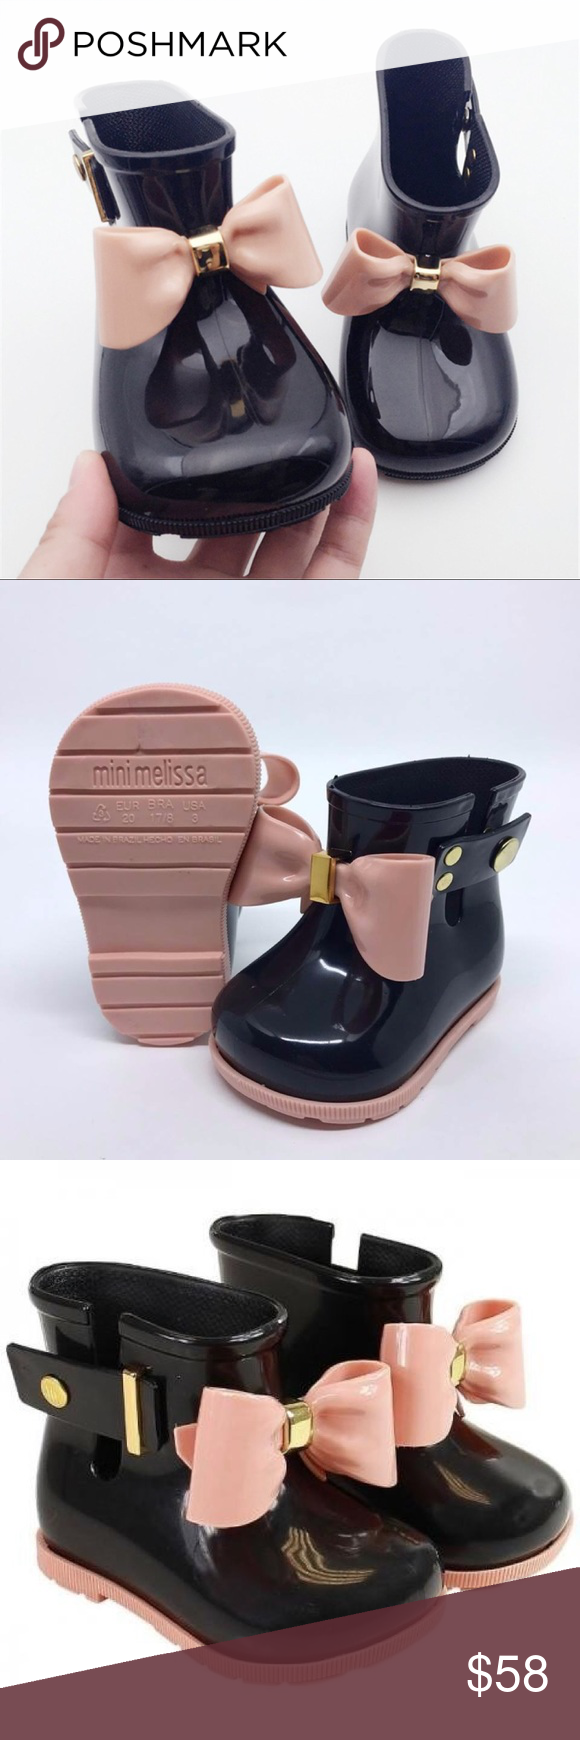 1de8bb2c7b31 Like New mini melissa sugar rainbow boot UST6 EU21 Like new mini melissa  sugar rainbow boot. Protect her feet while she plays with Mini Melissa s  rubber ...